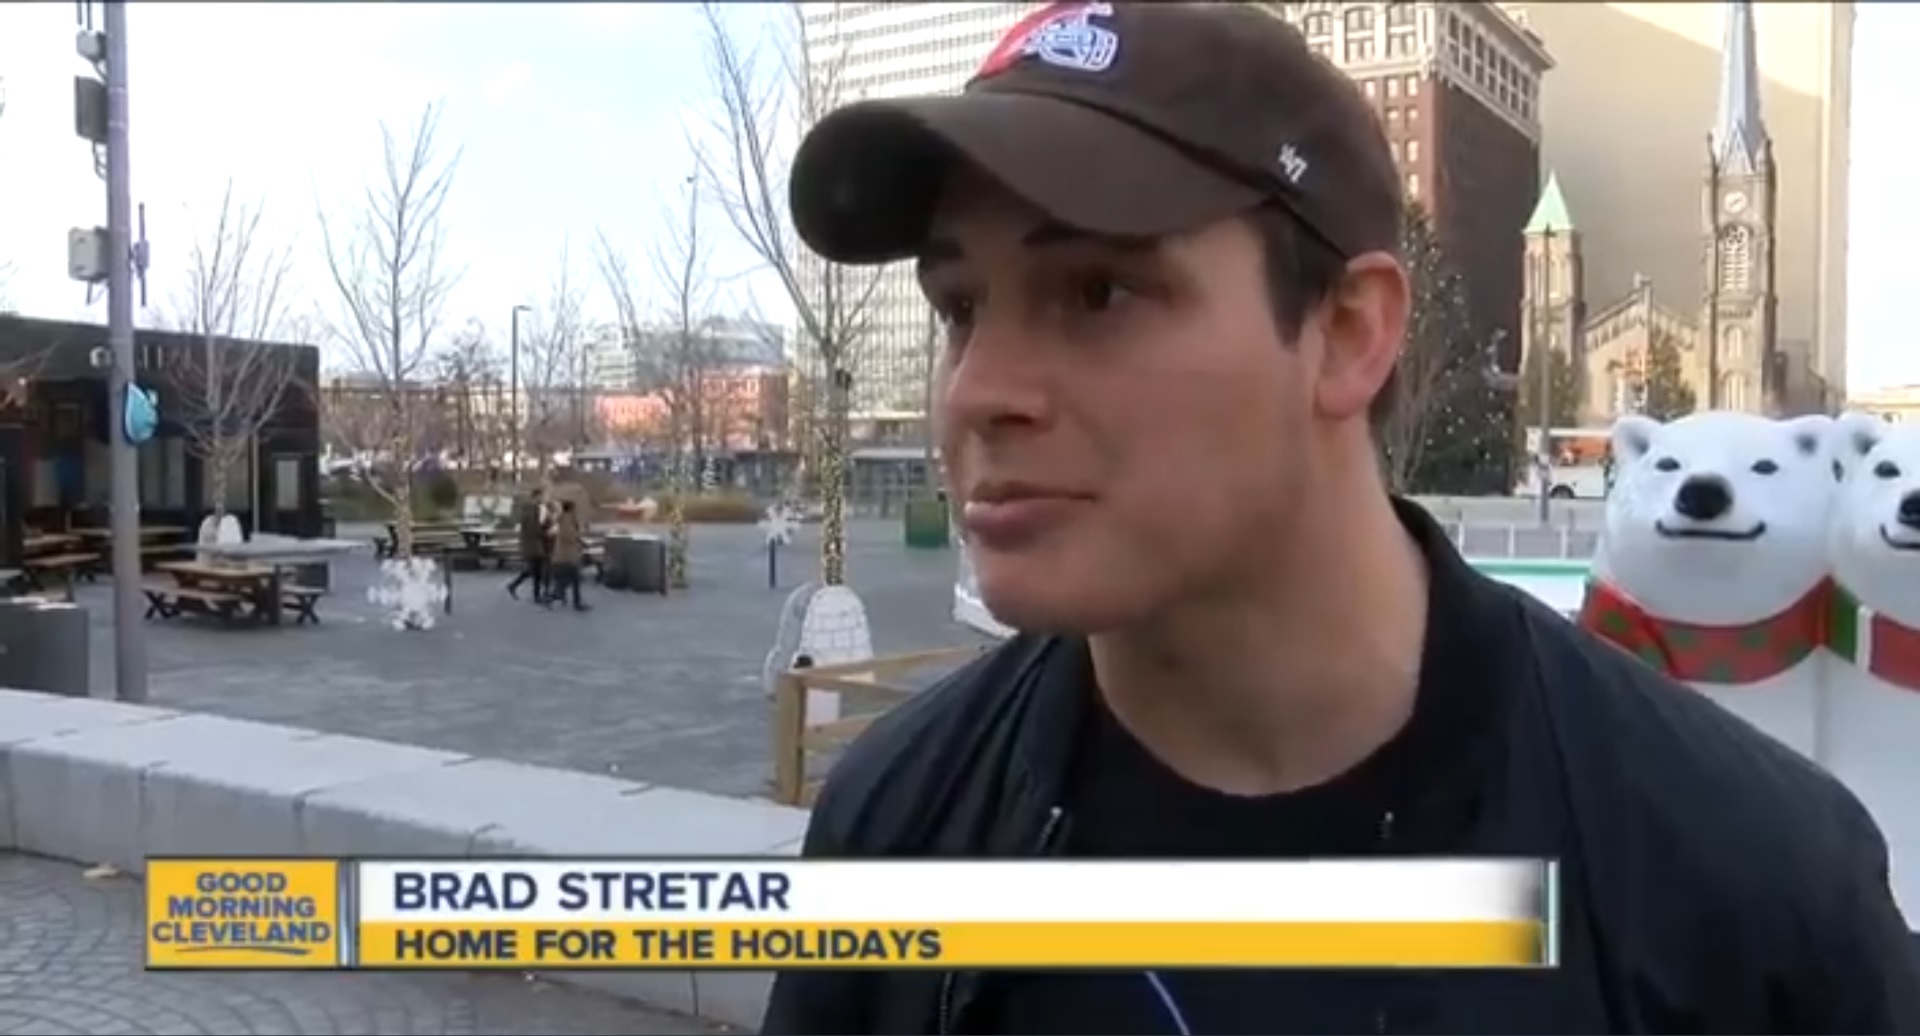 Brad Stretar: Home For The Holidays